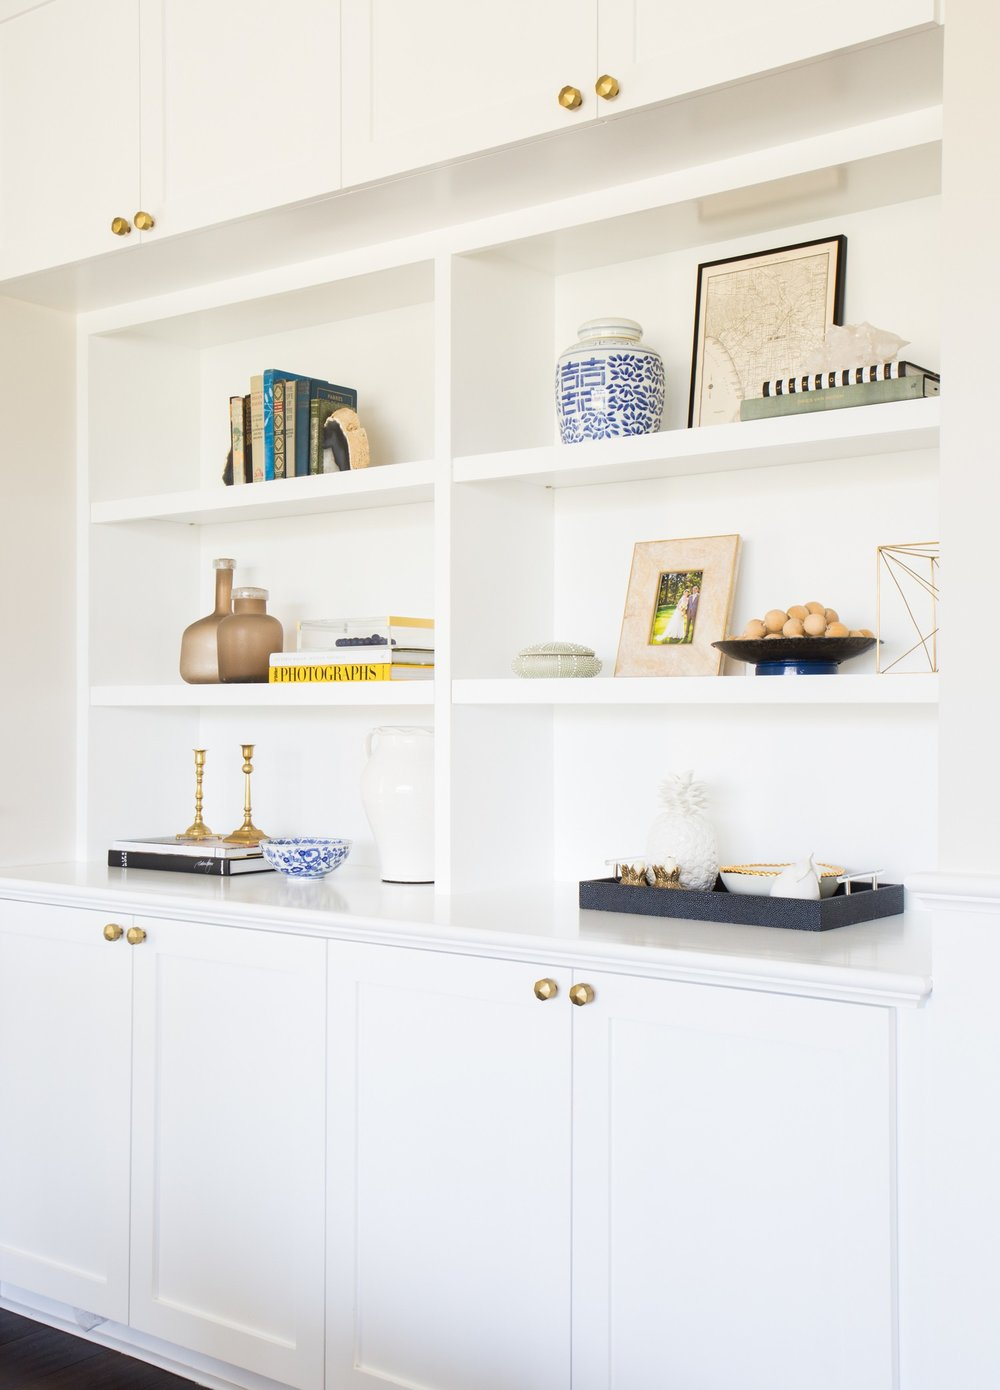 Shelf styling and brass knobs || Studio McGee